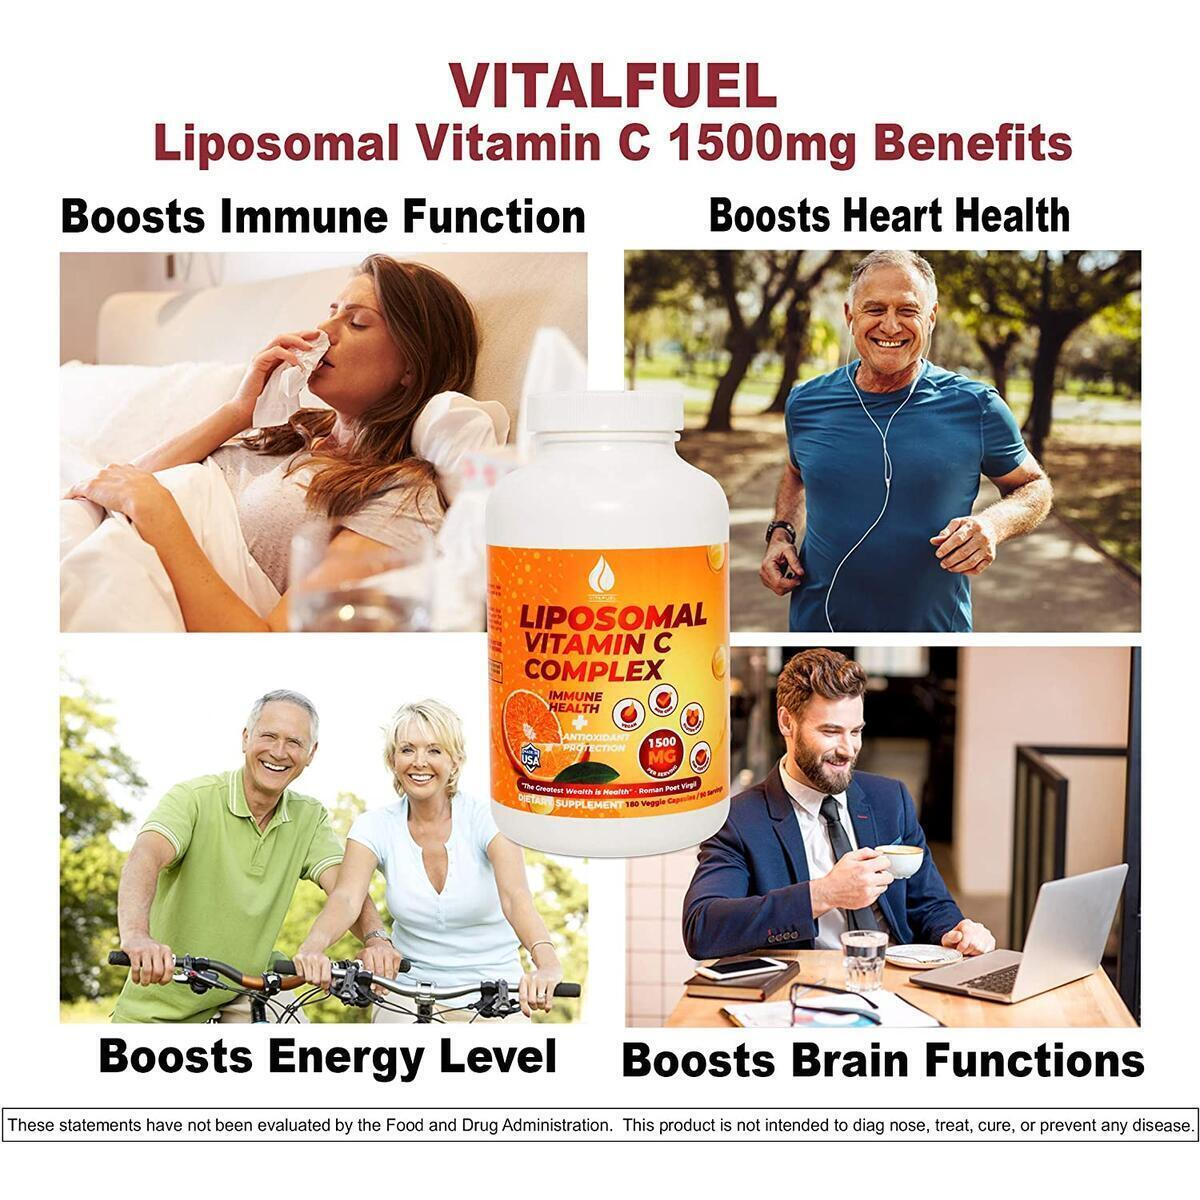 Liposomal Vitamin C 1500mg - Best Pure VIT C Fat Soluble Lypospheric High Absorption Vitamins C Complex, Antioxidant Immune Health, Anti-Aging Collagen Booster, 180 Capsules 90 Servings